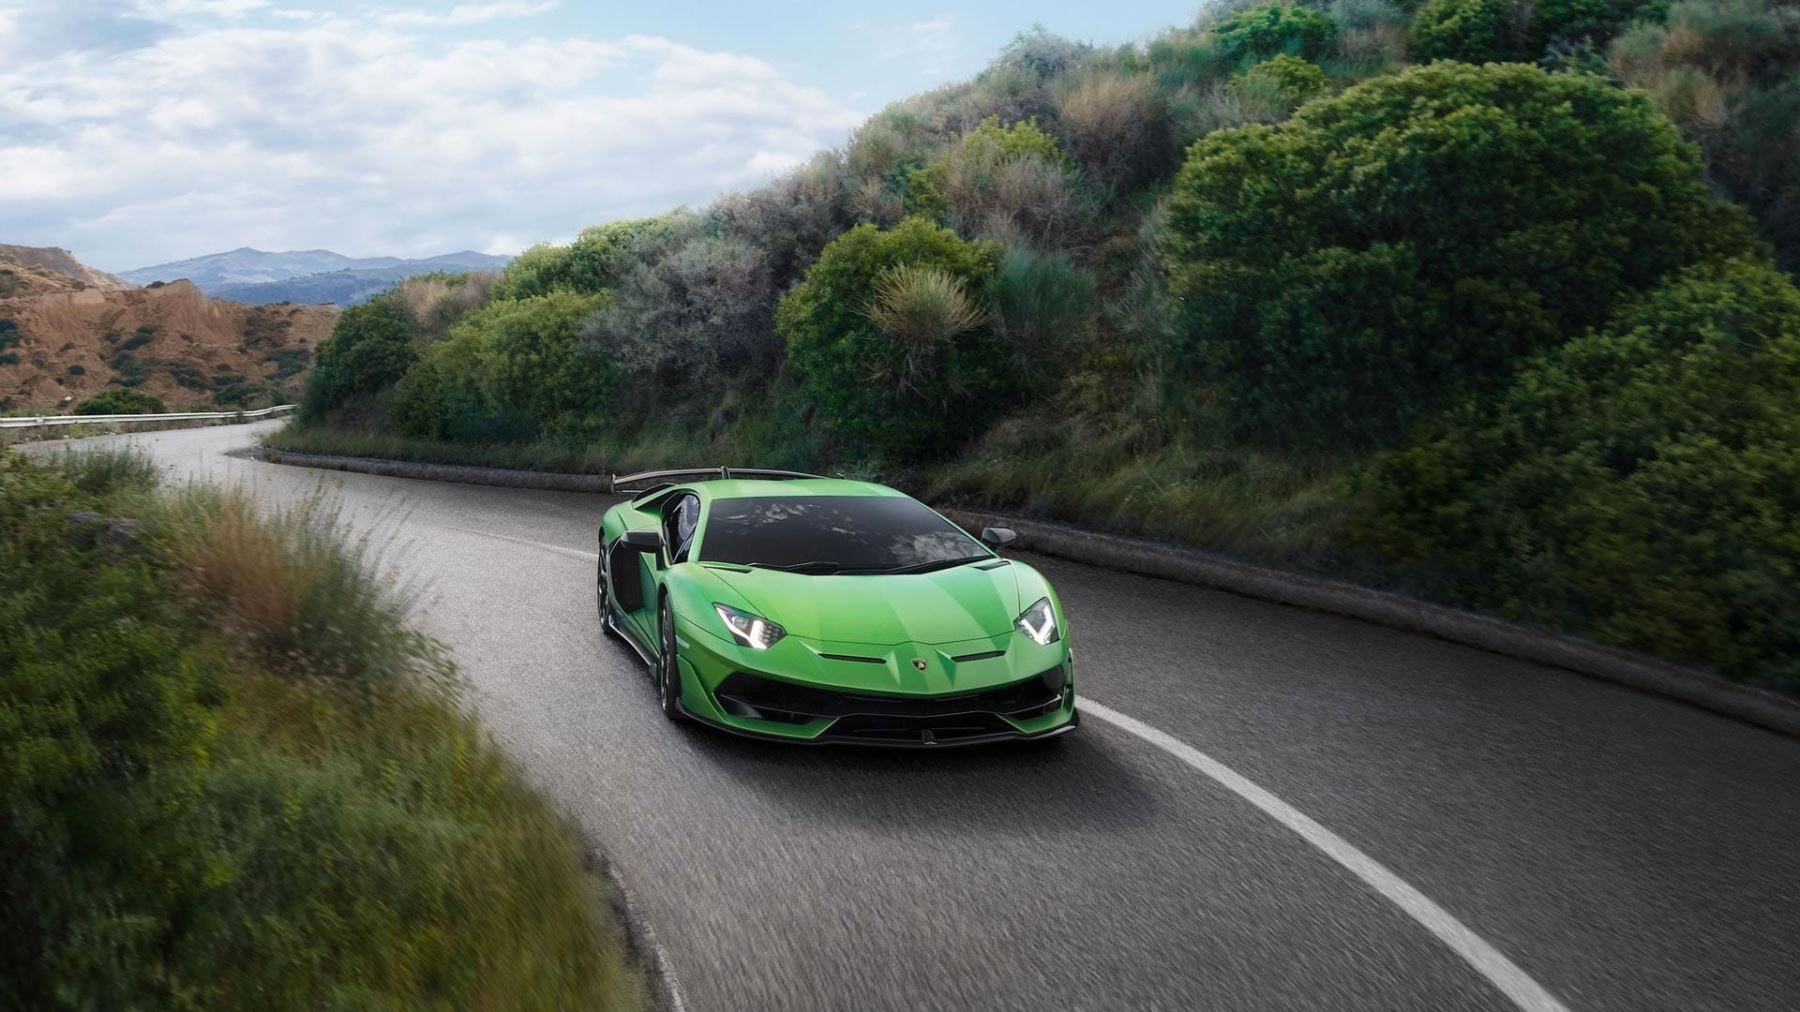 Lamborghini Aventador SVJ Coupe - Real Emotions Shape The Future image 7